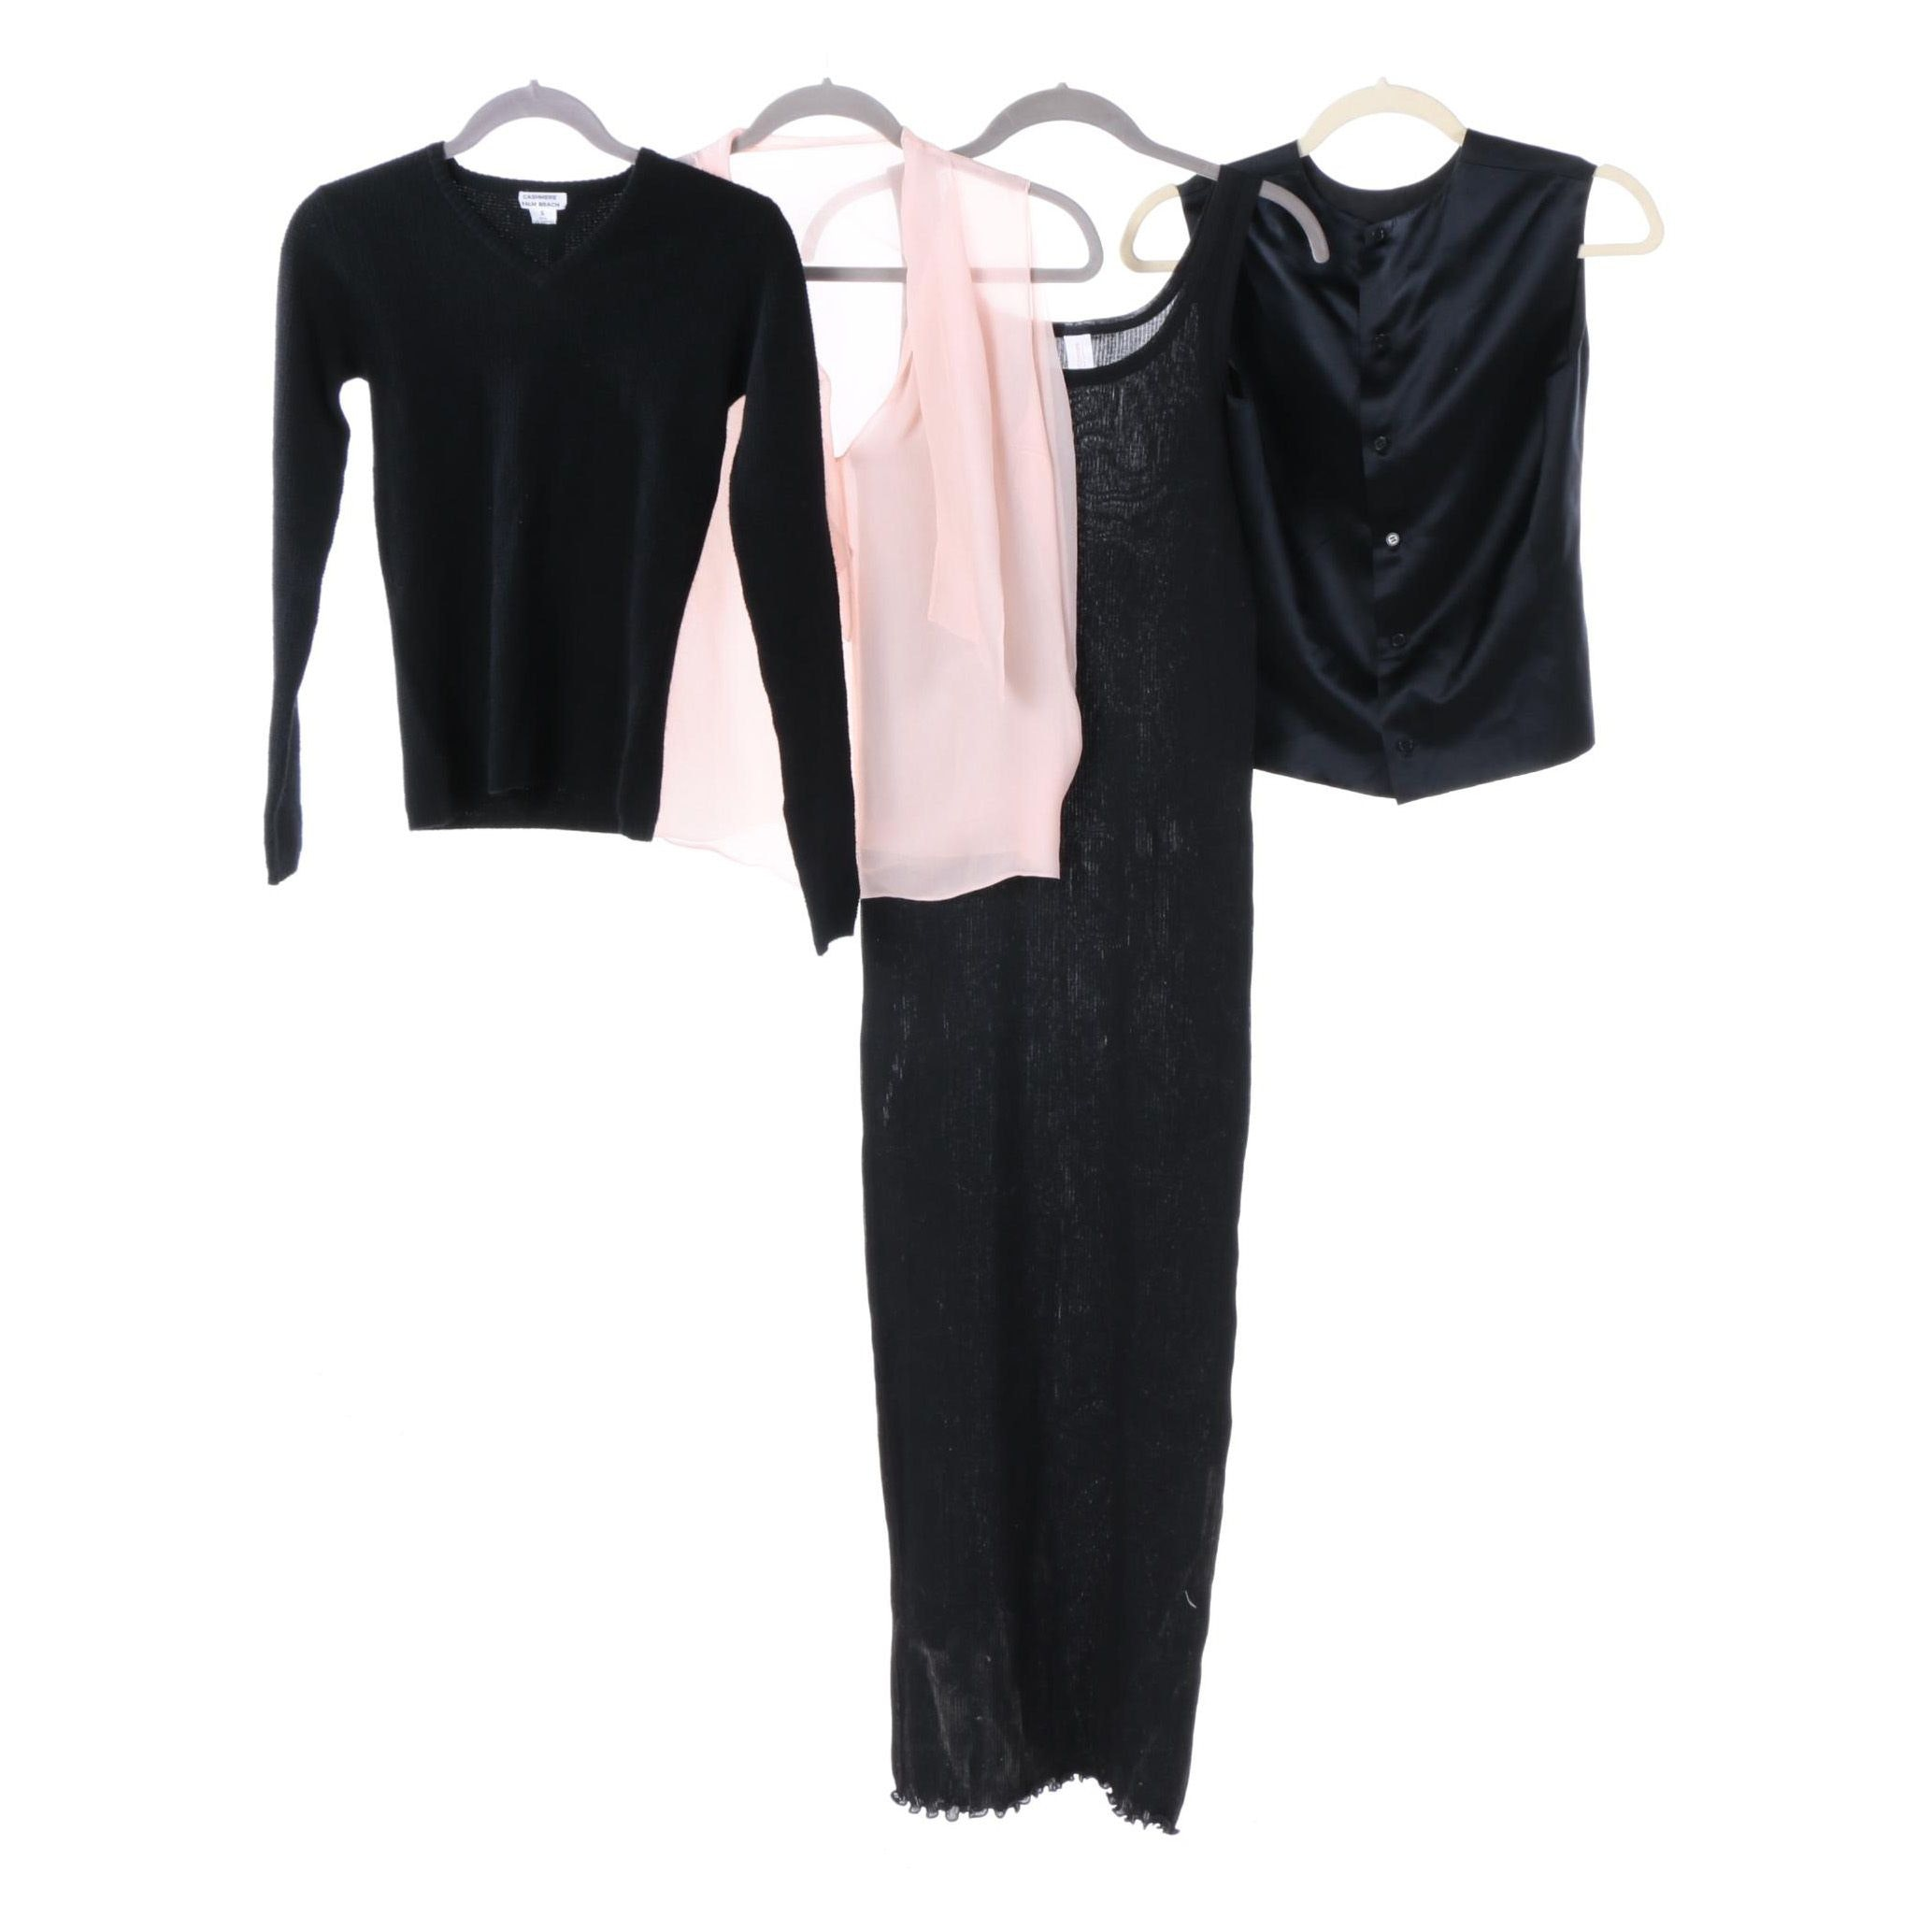 Women's Tops and Nightgown Including Ripcosa